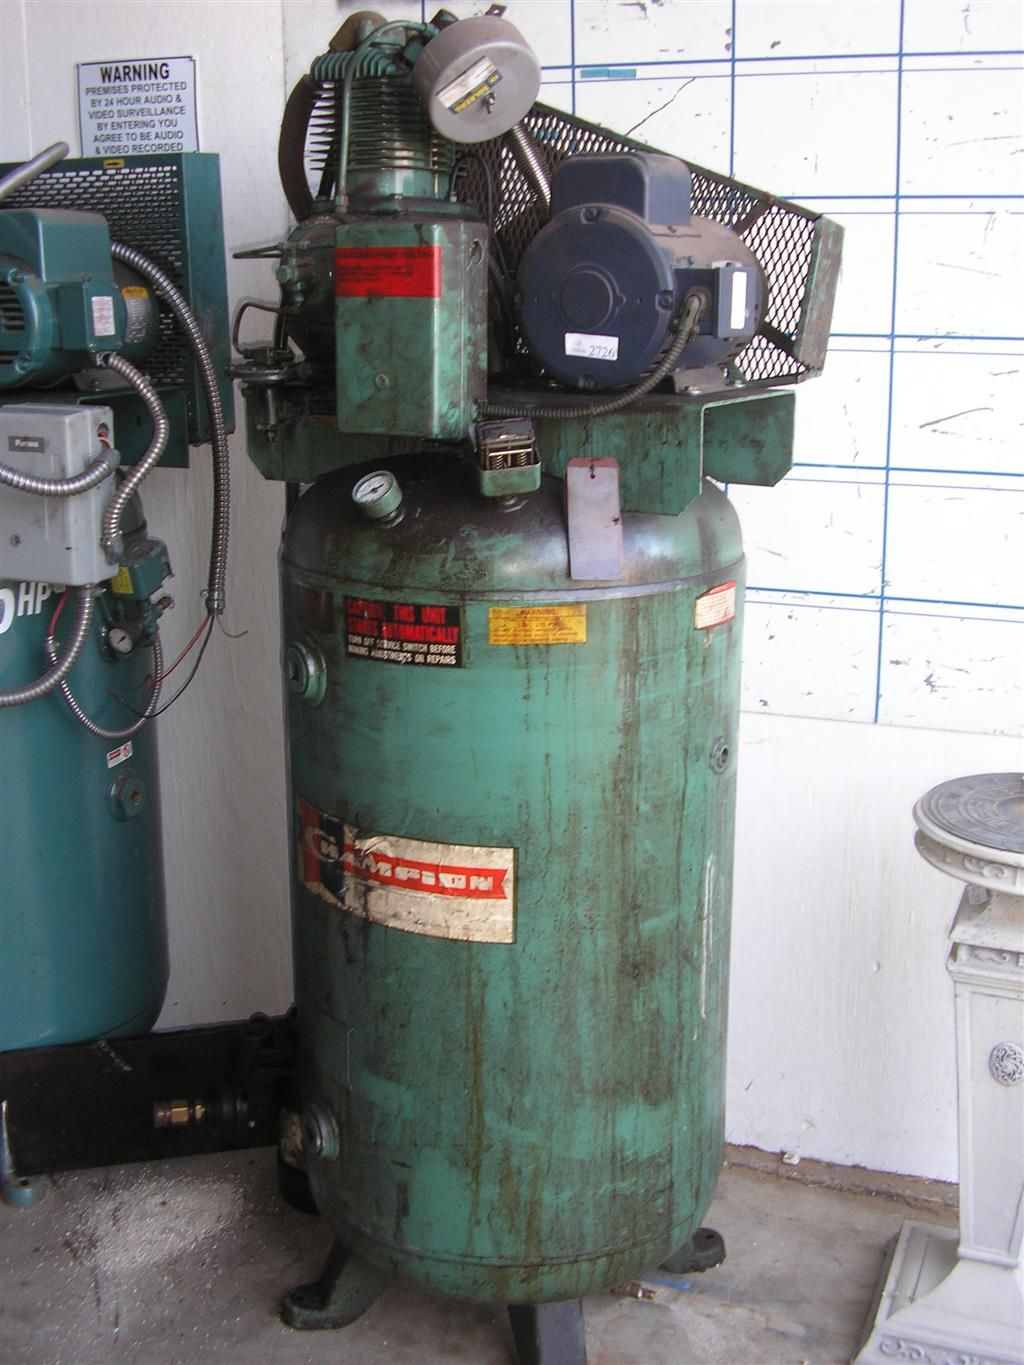 60 Gallon 2 Stage Pneumatic Air Compressor from Champion